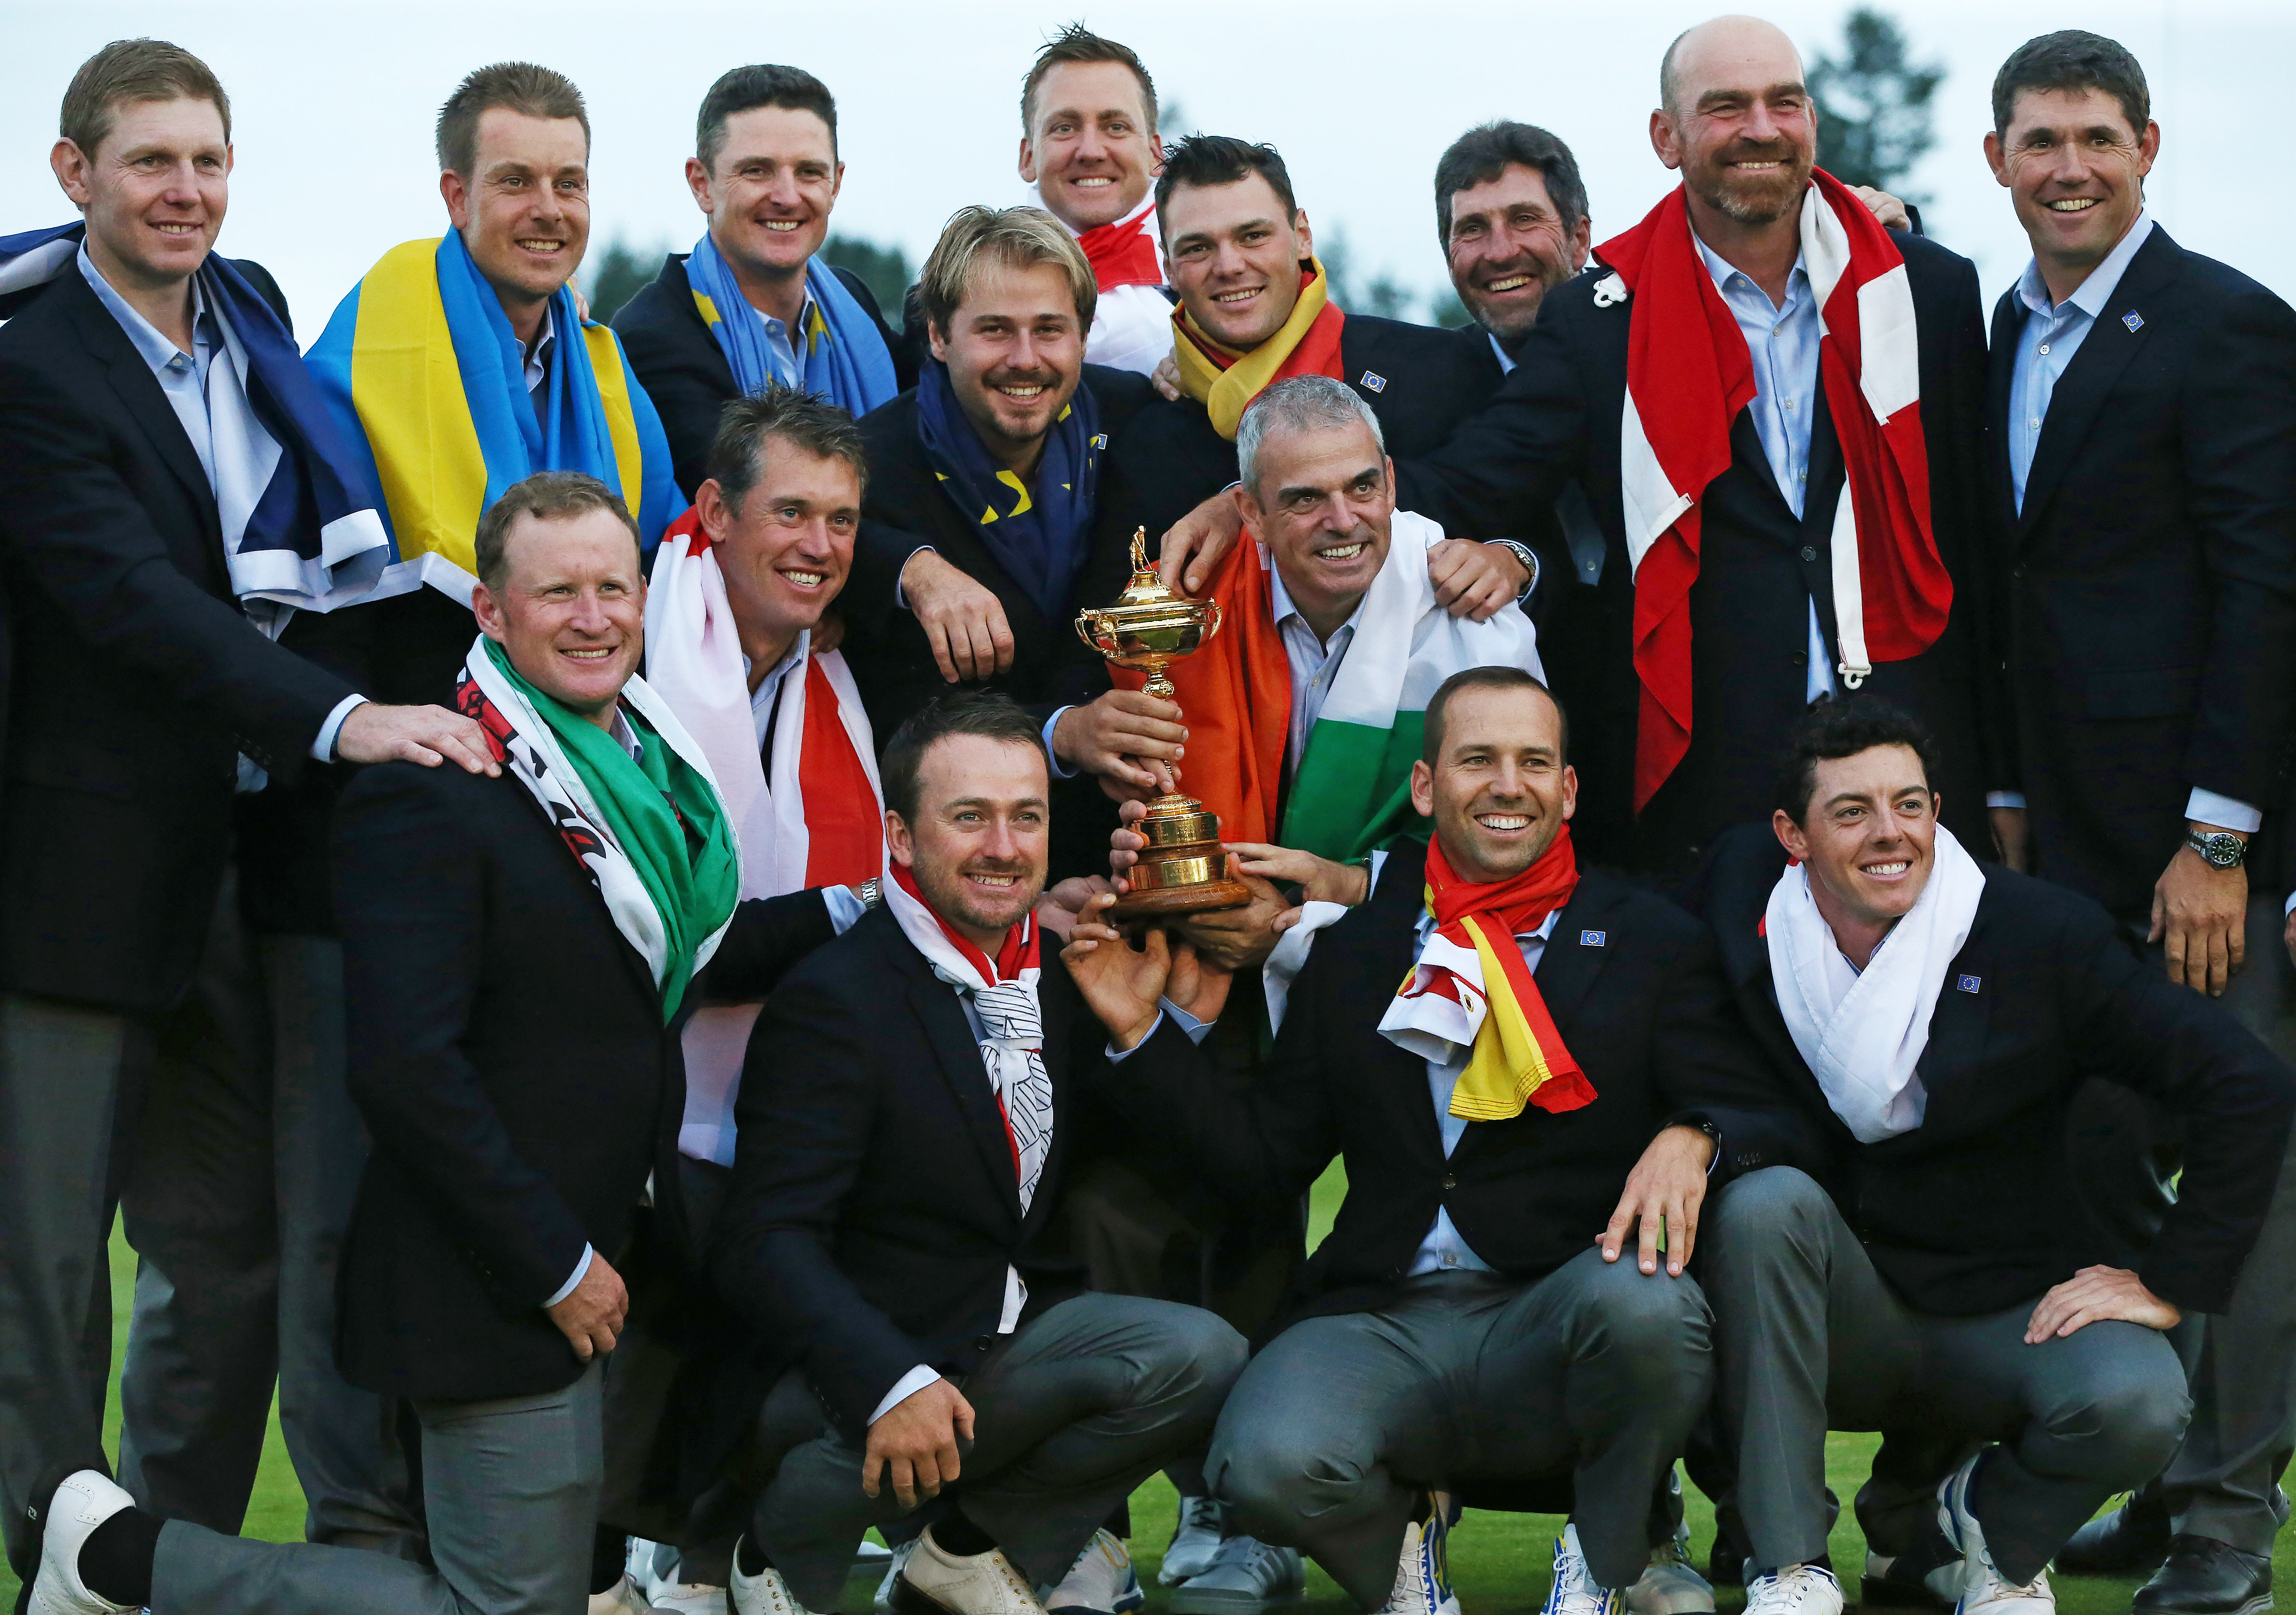 The Ryder Cup was opened to all of Europe in 1979.